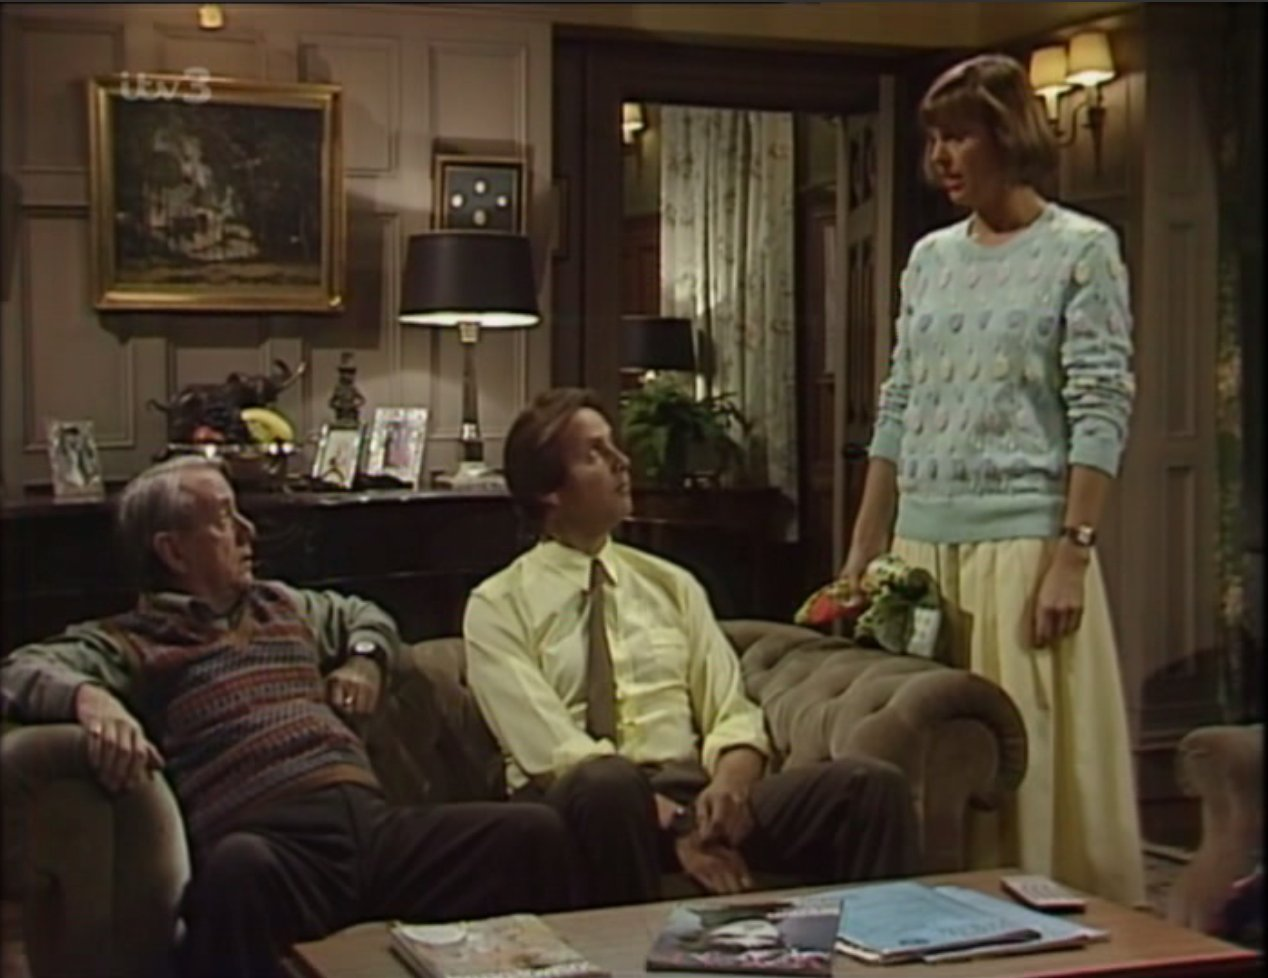 Christopher Blake, Harold Goodwin, and Jennifer Lonsdale in That's My Boy (1981)